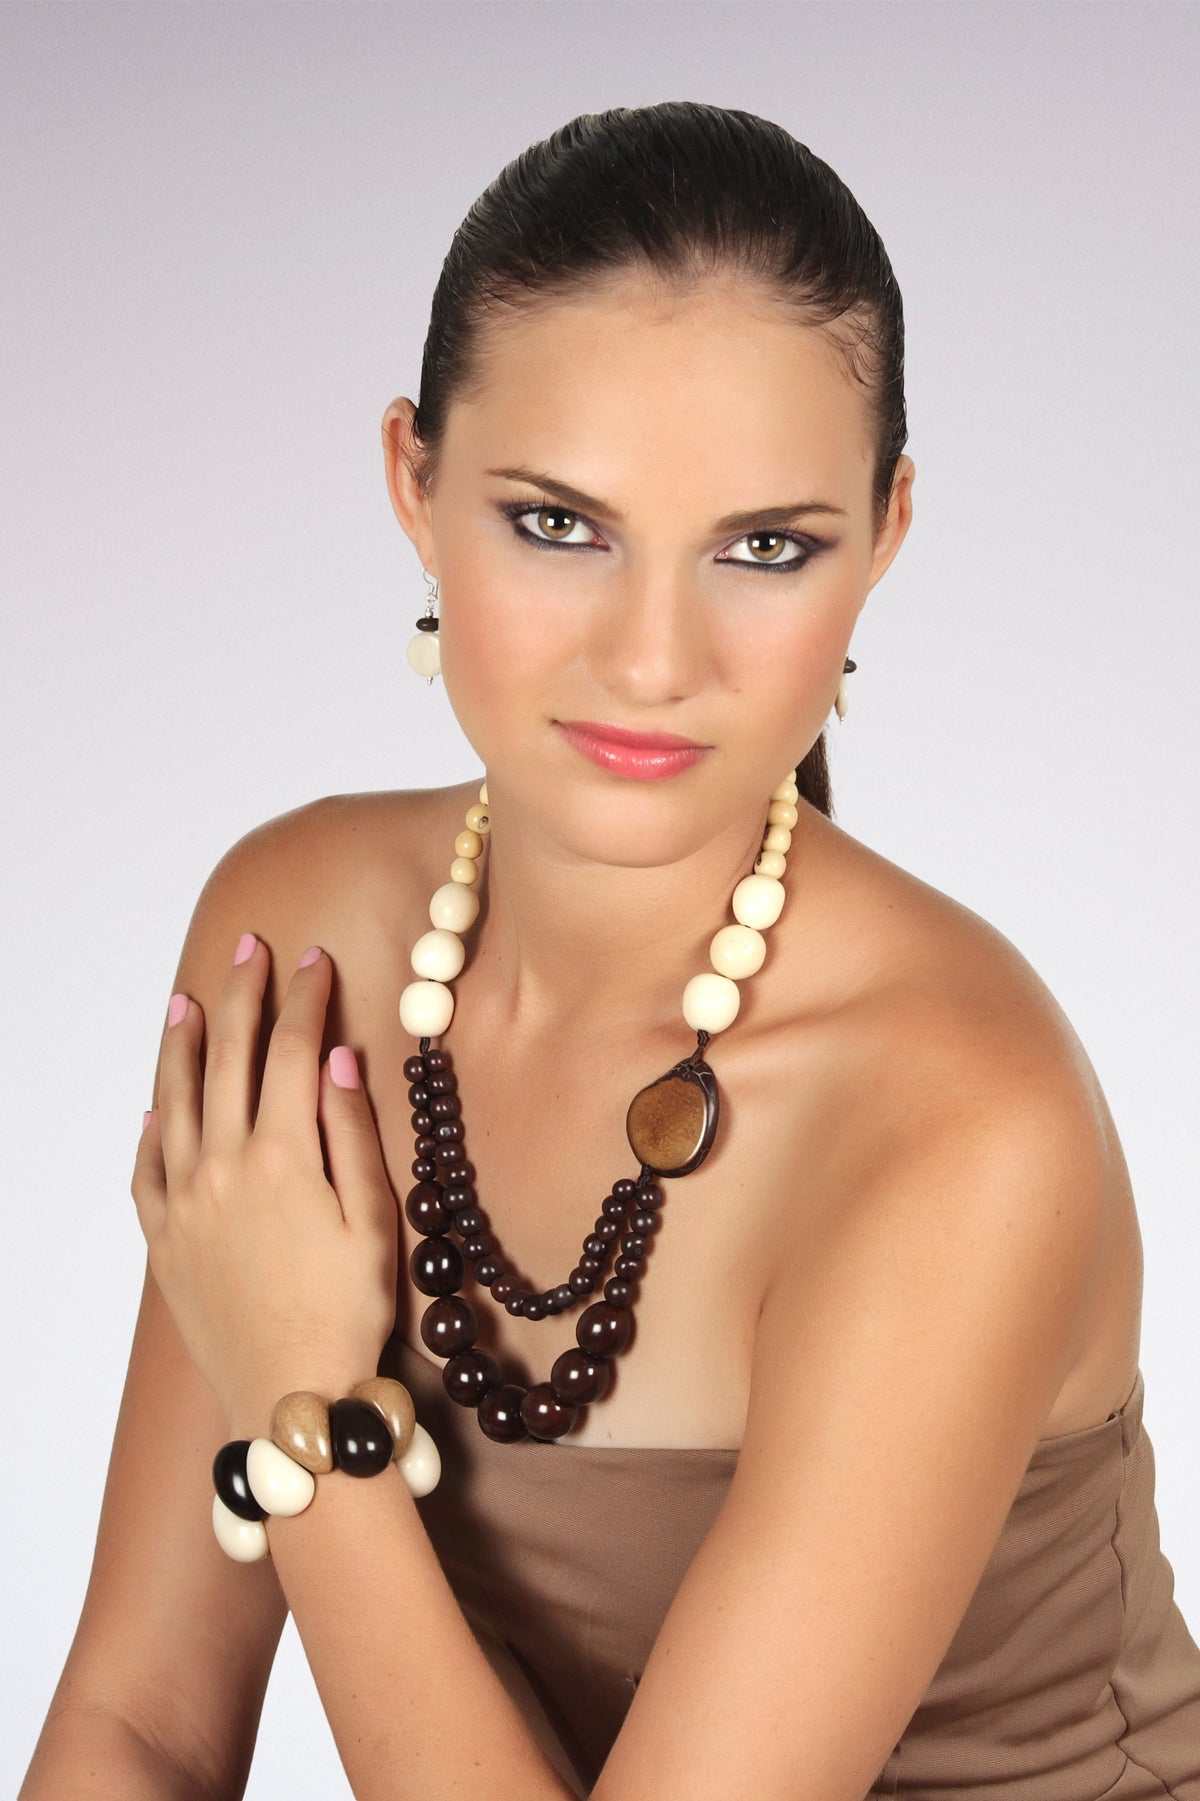 Trilogy necklace - Brown & Ivory tones